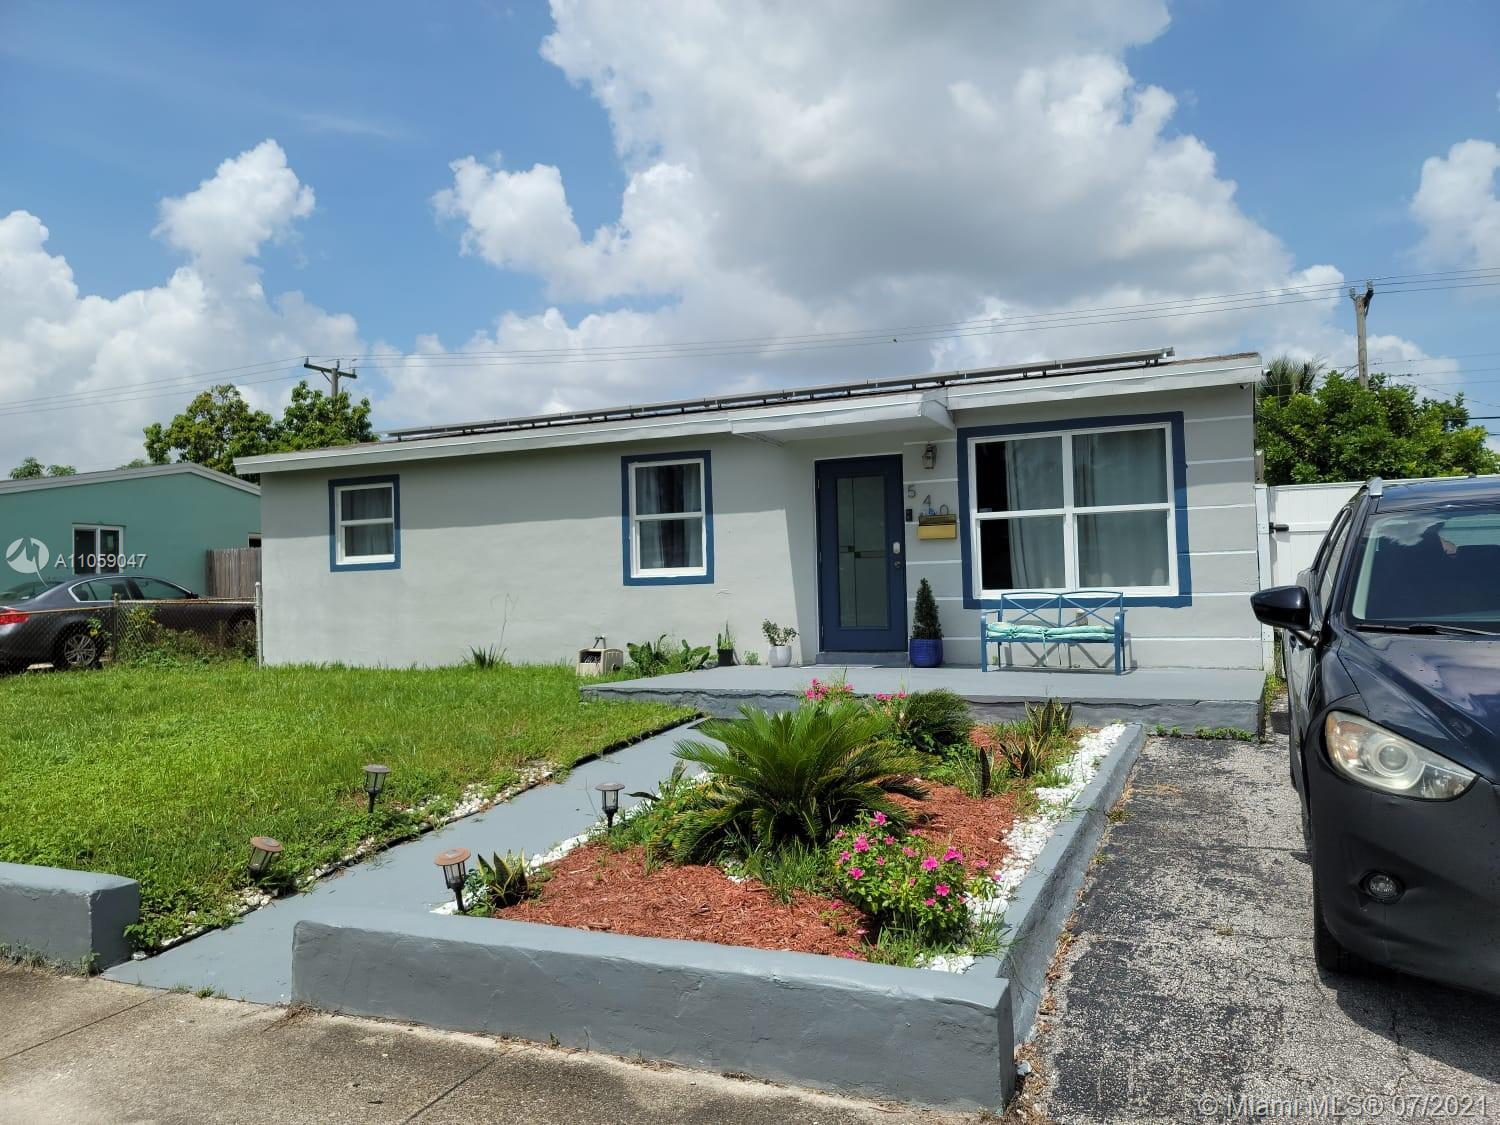 Nice 4 bedrooms 1 bath house with a lot of potential in Hollywood with no association fee in a nice